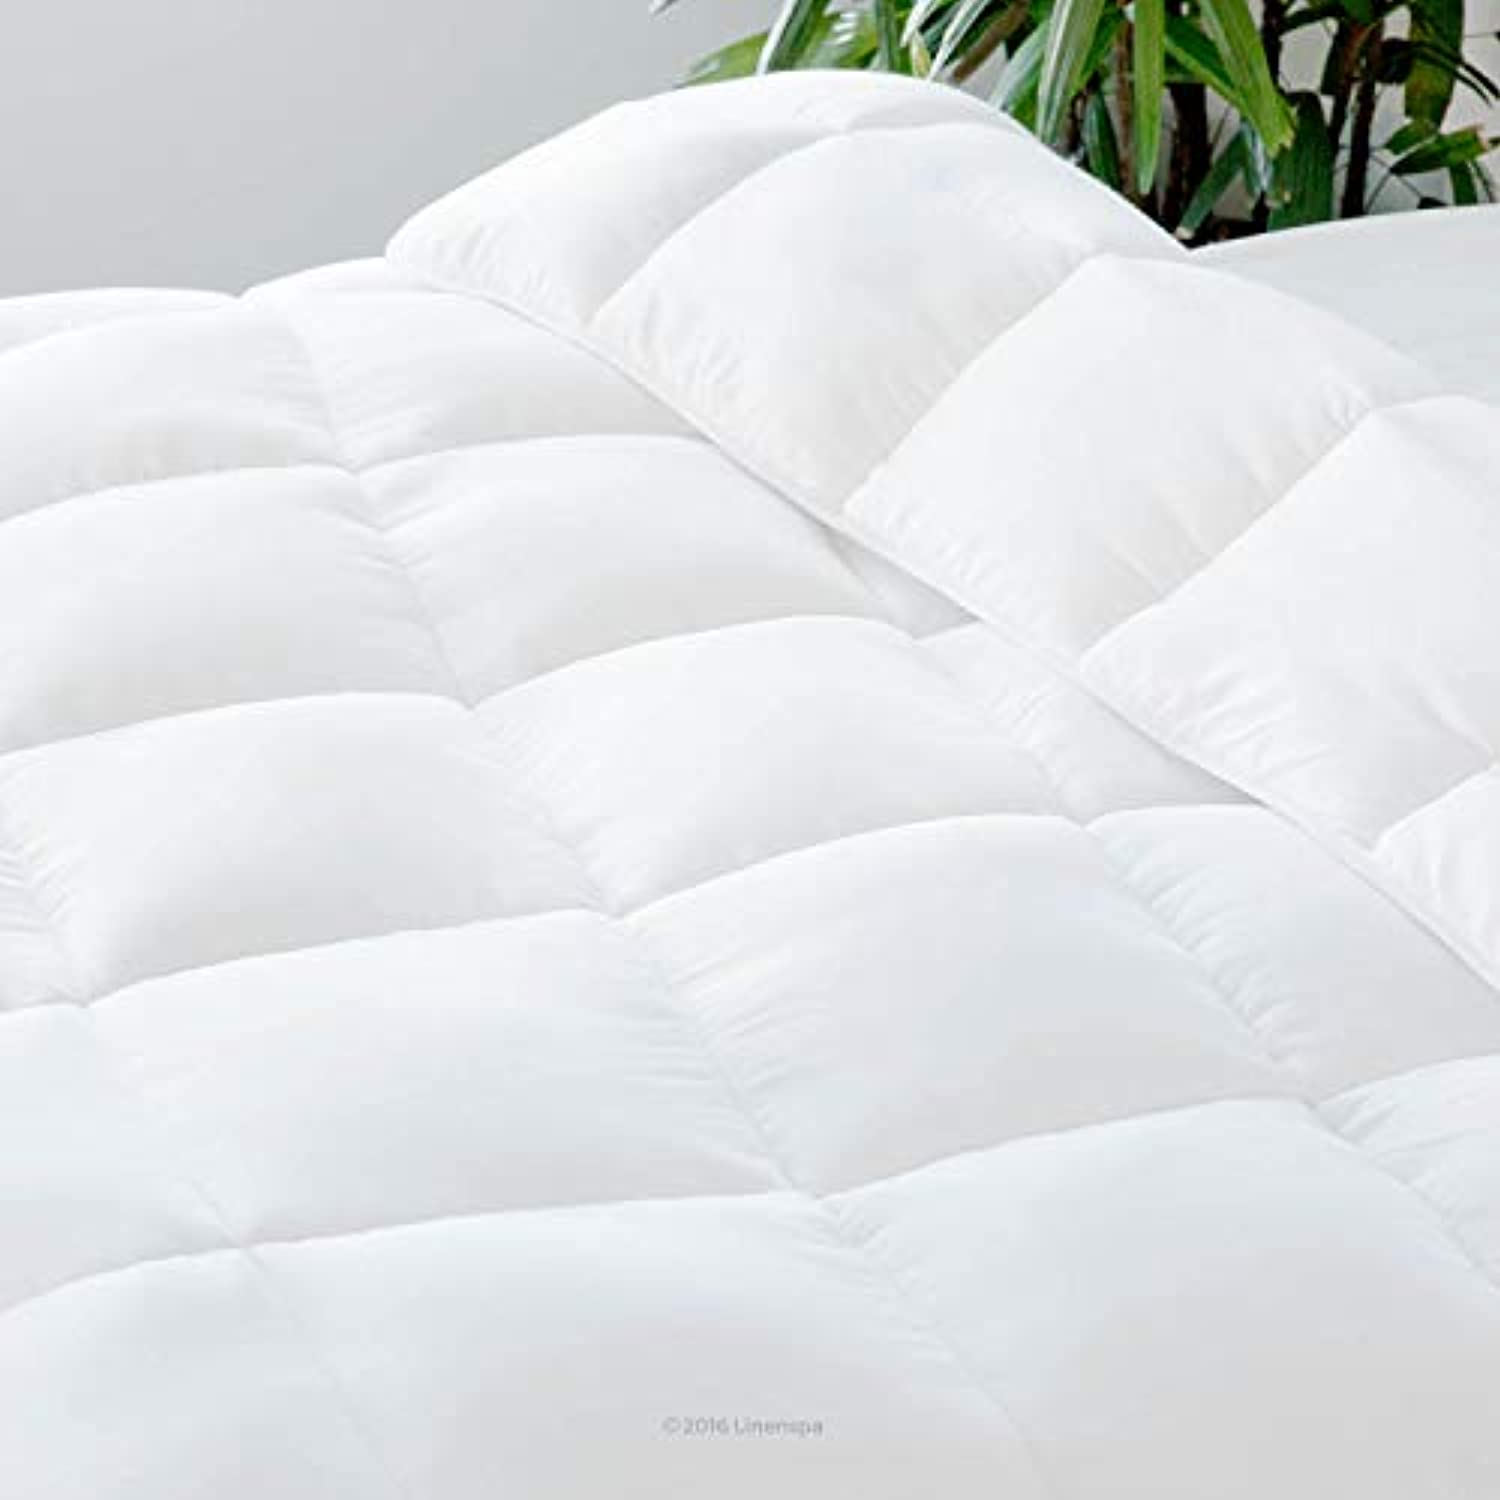 Classier: Buy Linenspa Linenspa All-Season White Down Alternative Quilted Comforter - Corner Duvet Tabs - Hypoallergenic - Plush Microfiber Fill - Machine Washable - Duvet Insert or Stand-Alone Comforter - Queen